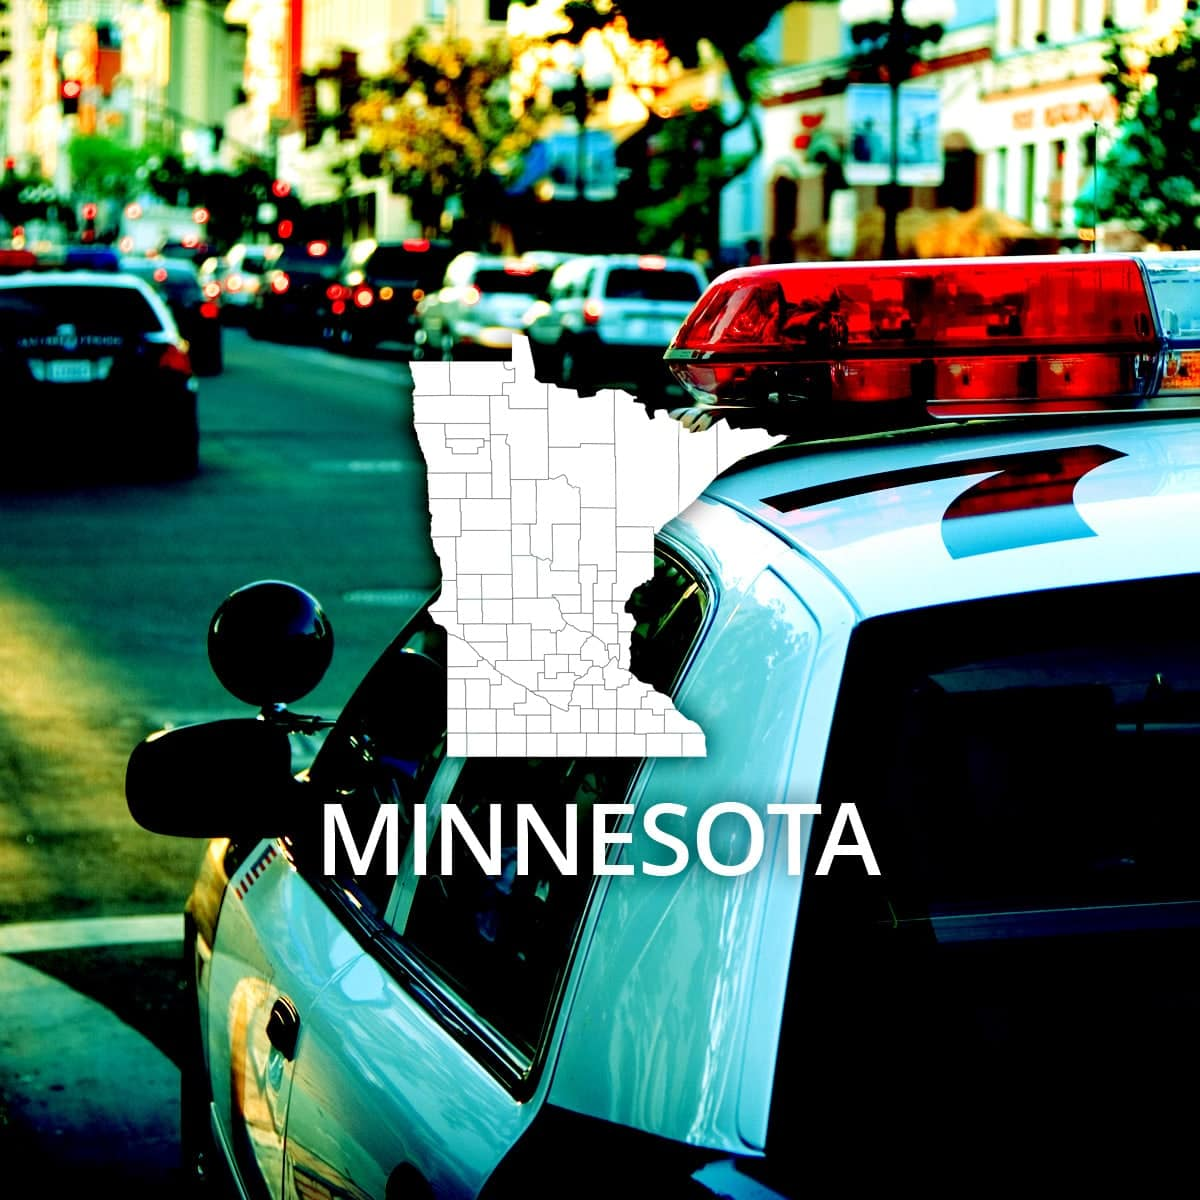 Mn department of motor vehicle vehicle ideas for Rochester department of motor vehicles